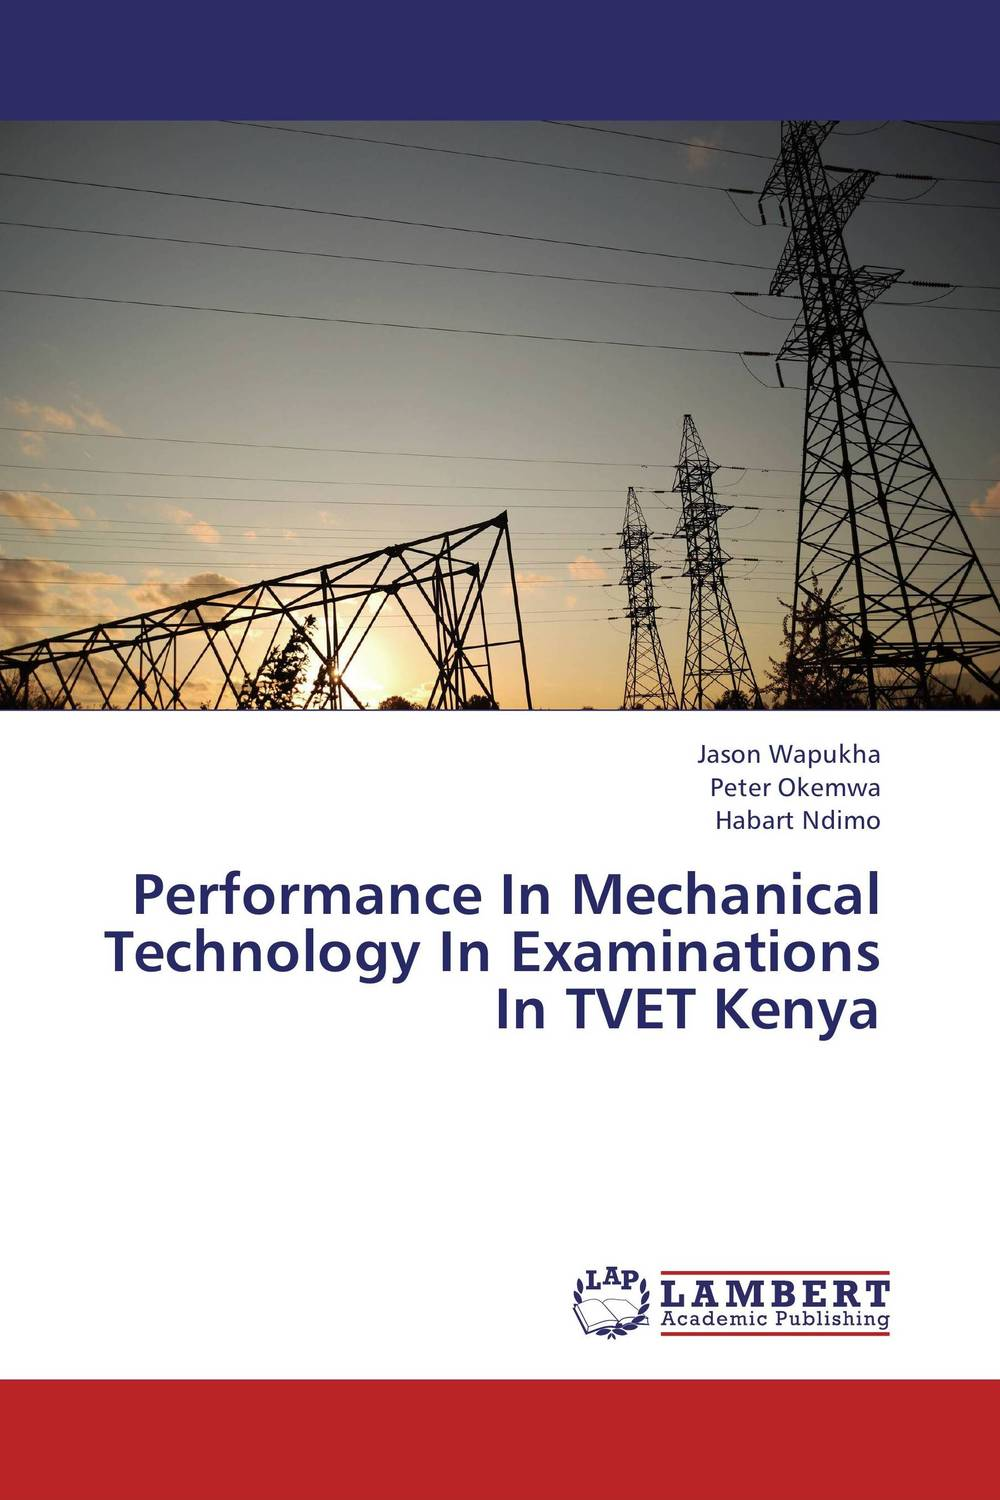 Performance In Mechanical Technology In Examinations In TVET Kenya technology based employee training and organizational performance